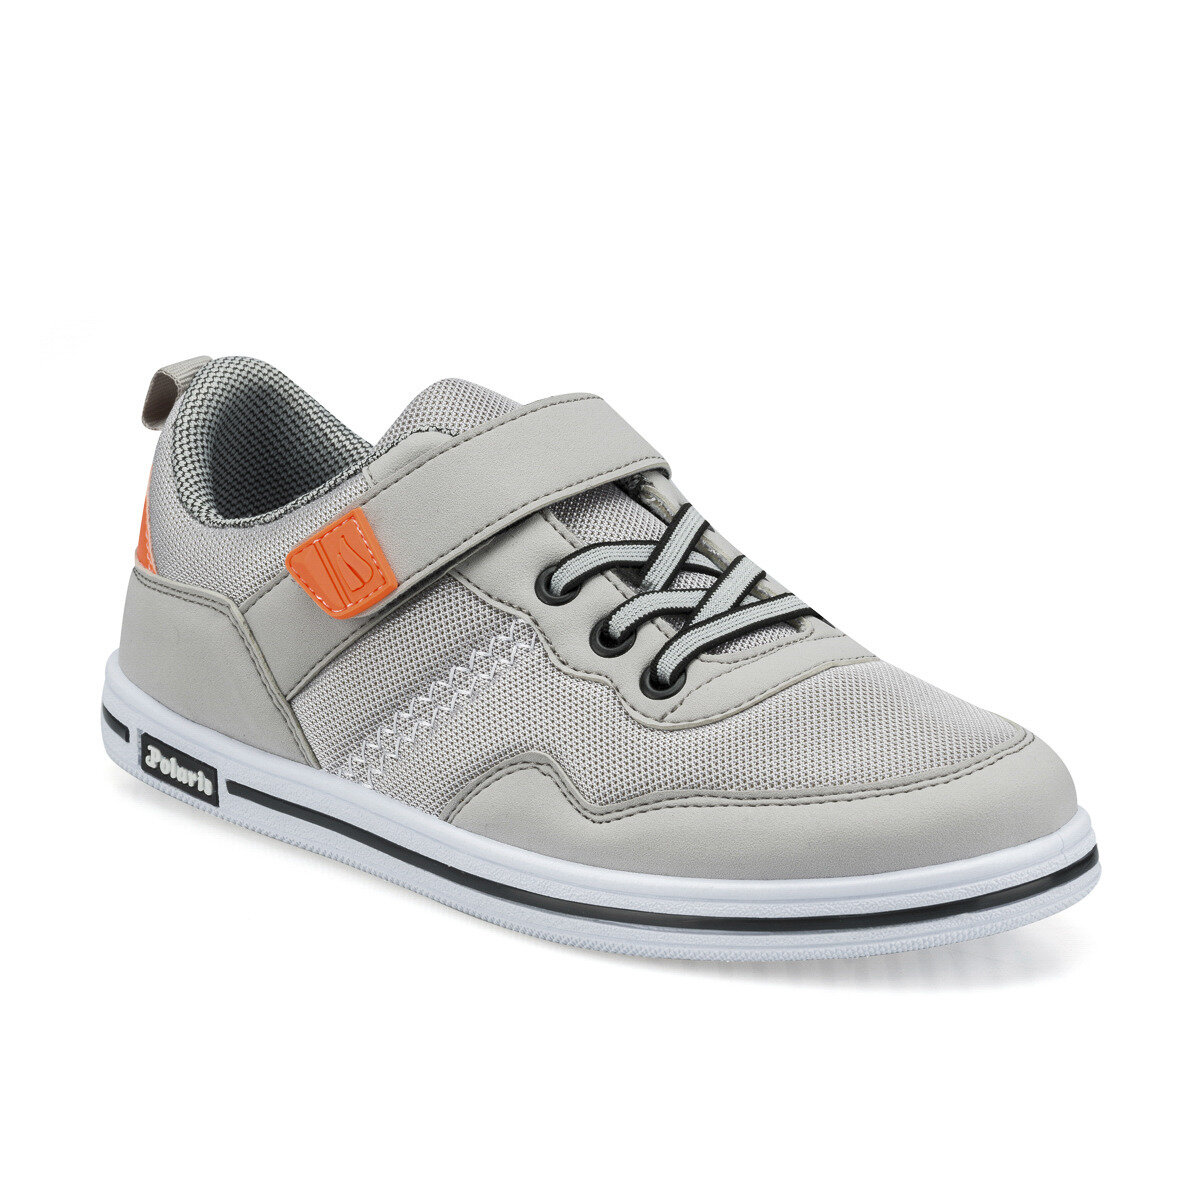 FLO 512532.G Gray Male Child Sneaker Shoes Polaris